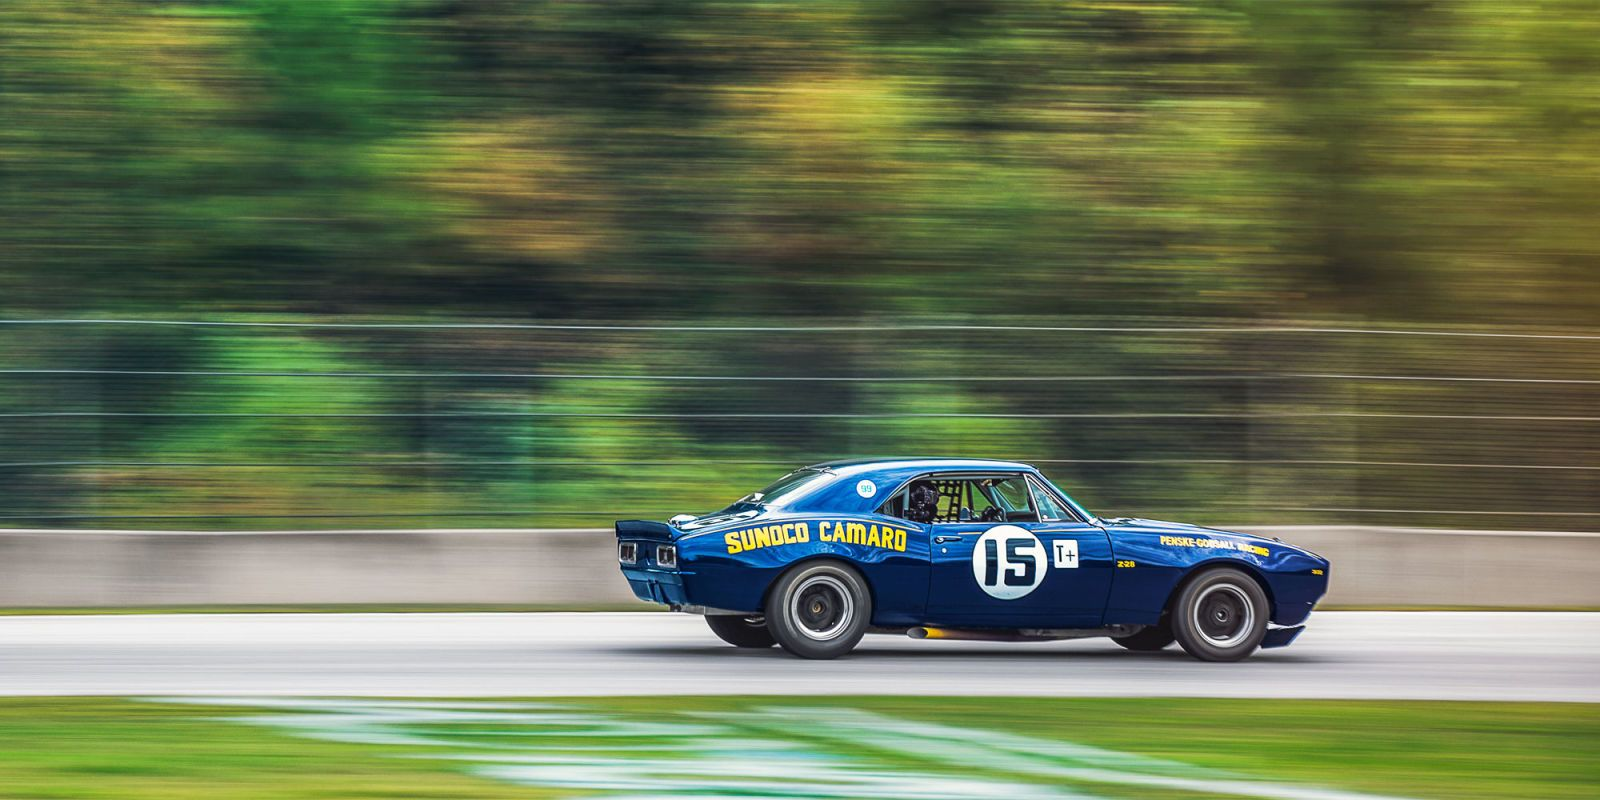 "<p>Mark Donohue was a master of creative interpretations of the rulebook, if not outright cheating. His <a href=""http://www.roadandtrack.com/car-culture/a27645/penske-camaro-z28-2016-camaro-ss/"" target=""_blank"">Penske Camaro Z/28</a>–with body panels dipped in acid to reduce weight and a ""safety"" cage that gave it tons of rigidity–is one of the most infamous in all of motorsport. When Trans-Am organizers realized what he was doing, they banned the so-called ""Lightweight,"" though it didn't stop Donohue from entering it the following year, disguised as a 1968 model. <a href=""http://www.roadandtrack.com/car-culture/a27645/penske-camaro-z28-2016-camaro-ss/"" target=""_blank"">Read the whole sneaky story here</a>.</p>"